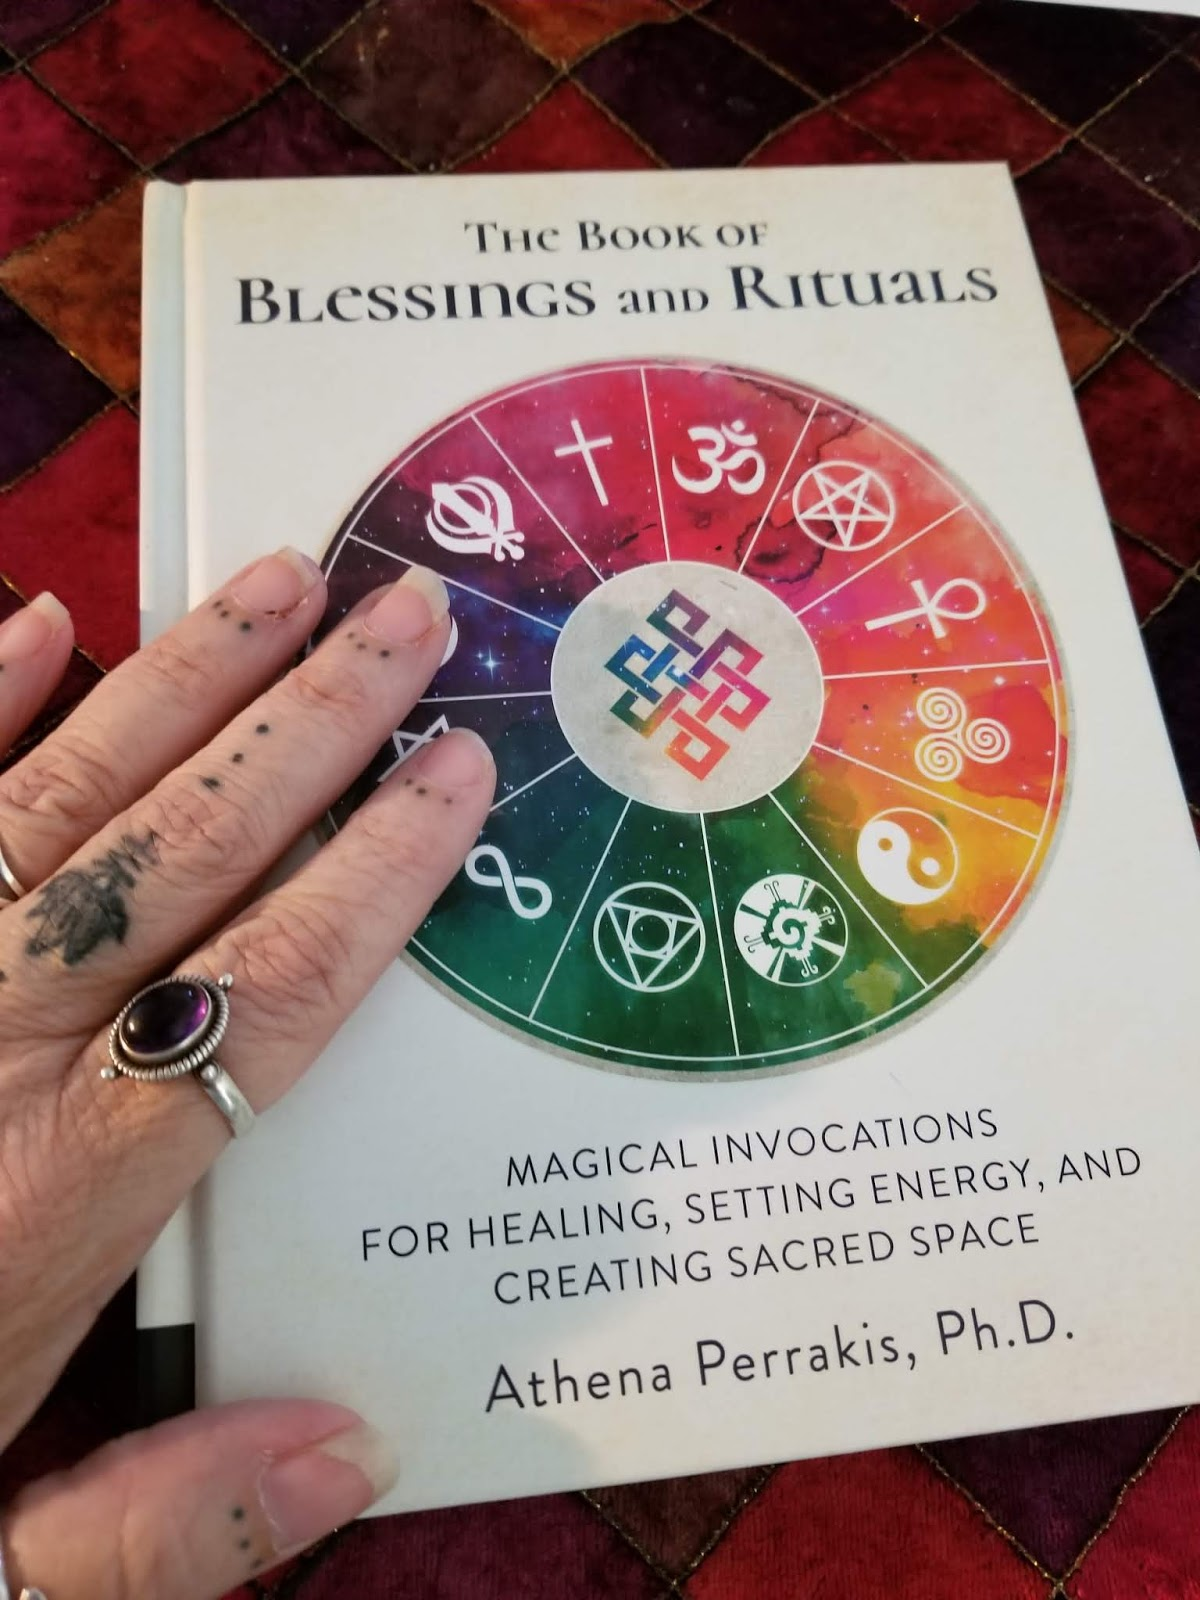 The Book of Blessings and Rituals - A Review - Confessions